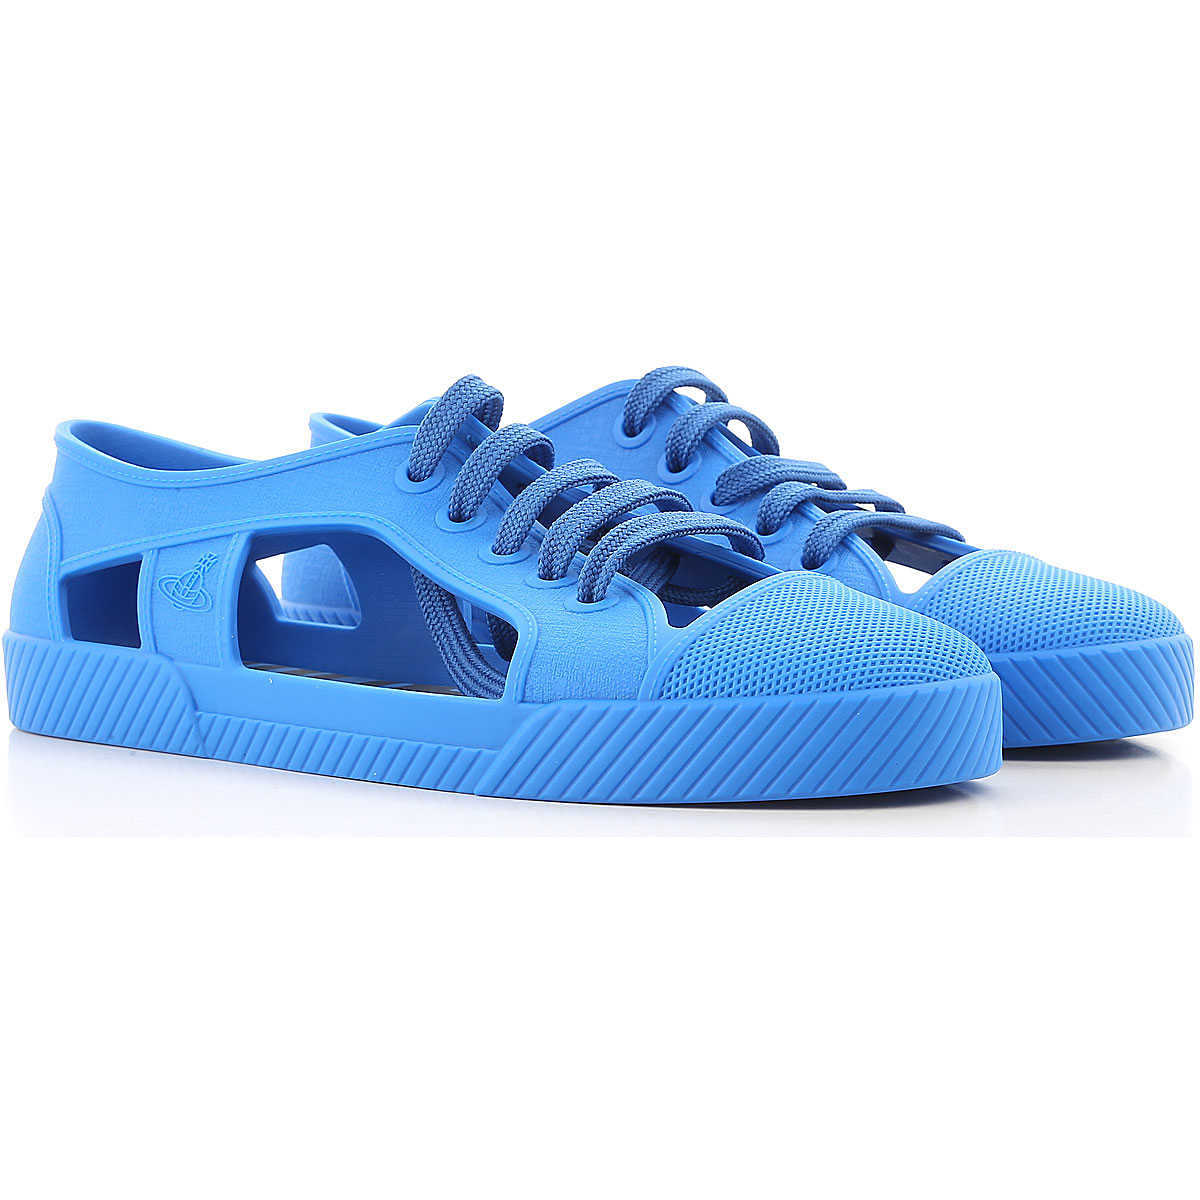 Vivienne Westwood Sneakers for Women On Sale in Outlet Melissa + Anglomania - GOOFASH